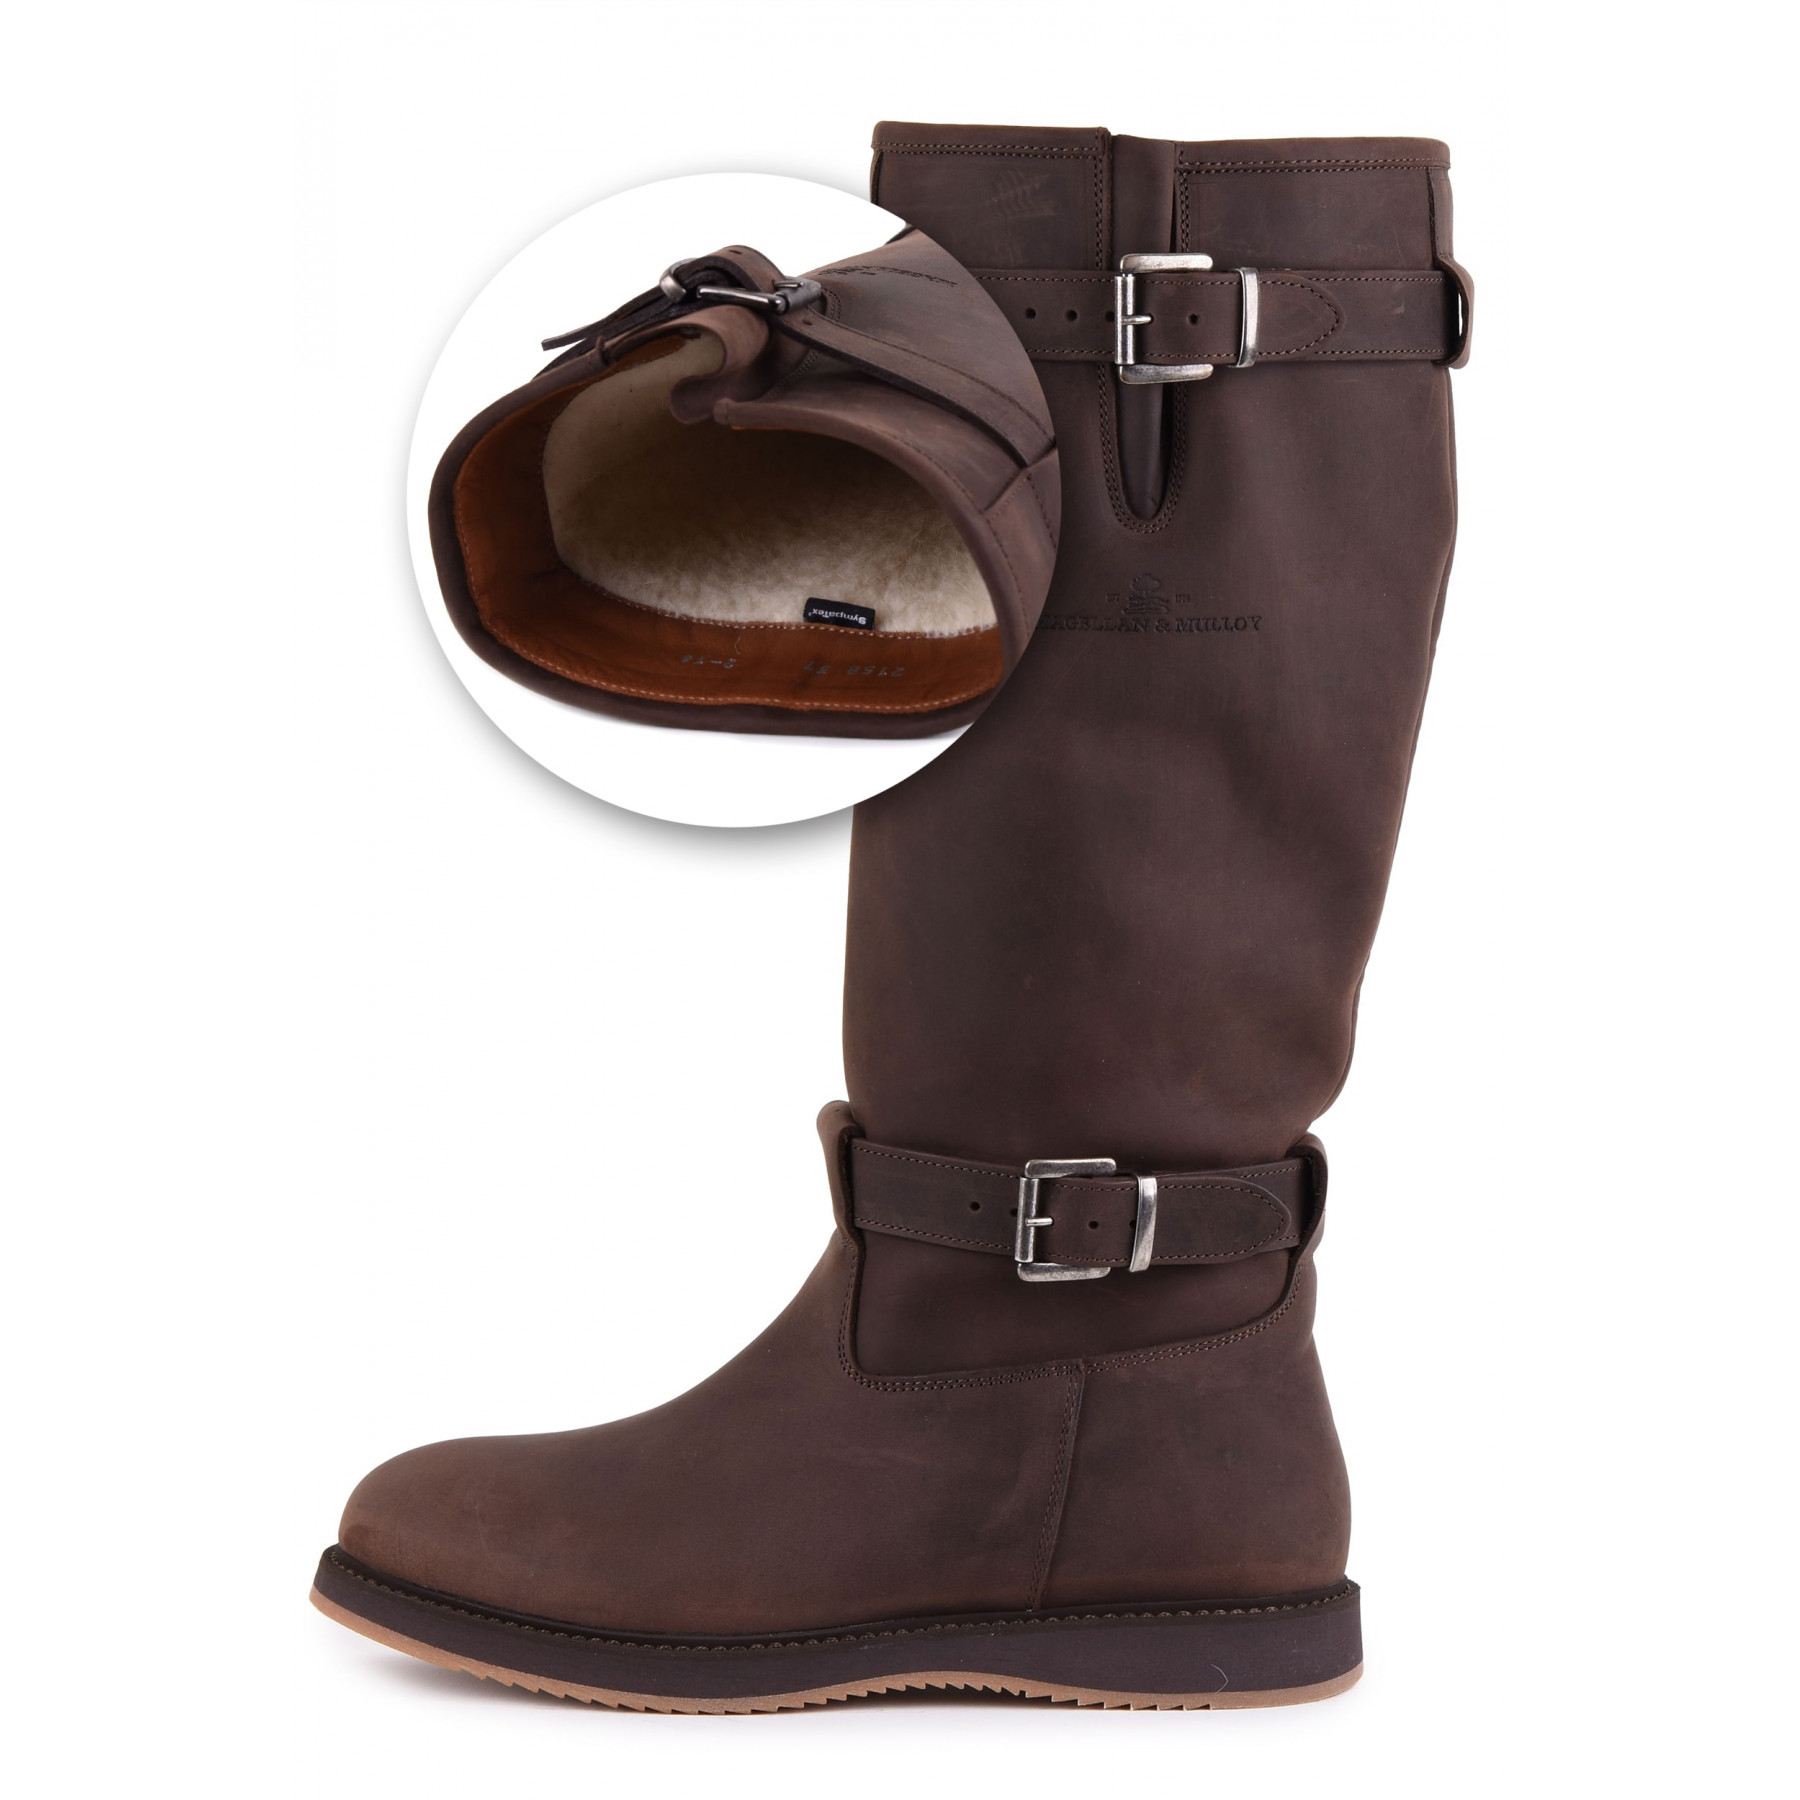 Magellan & Mulloy Xscape Denver Lammfell Brown, dunkelbraune Damen Outdoor Stiefel